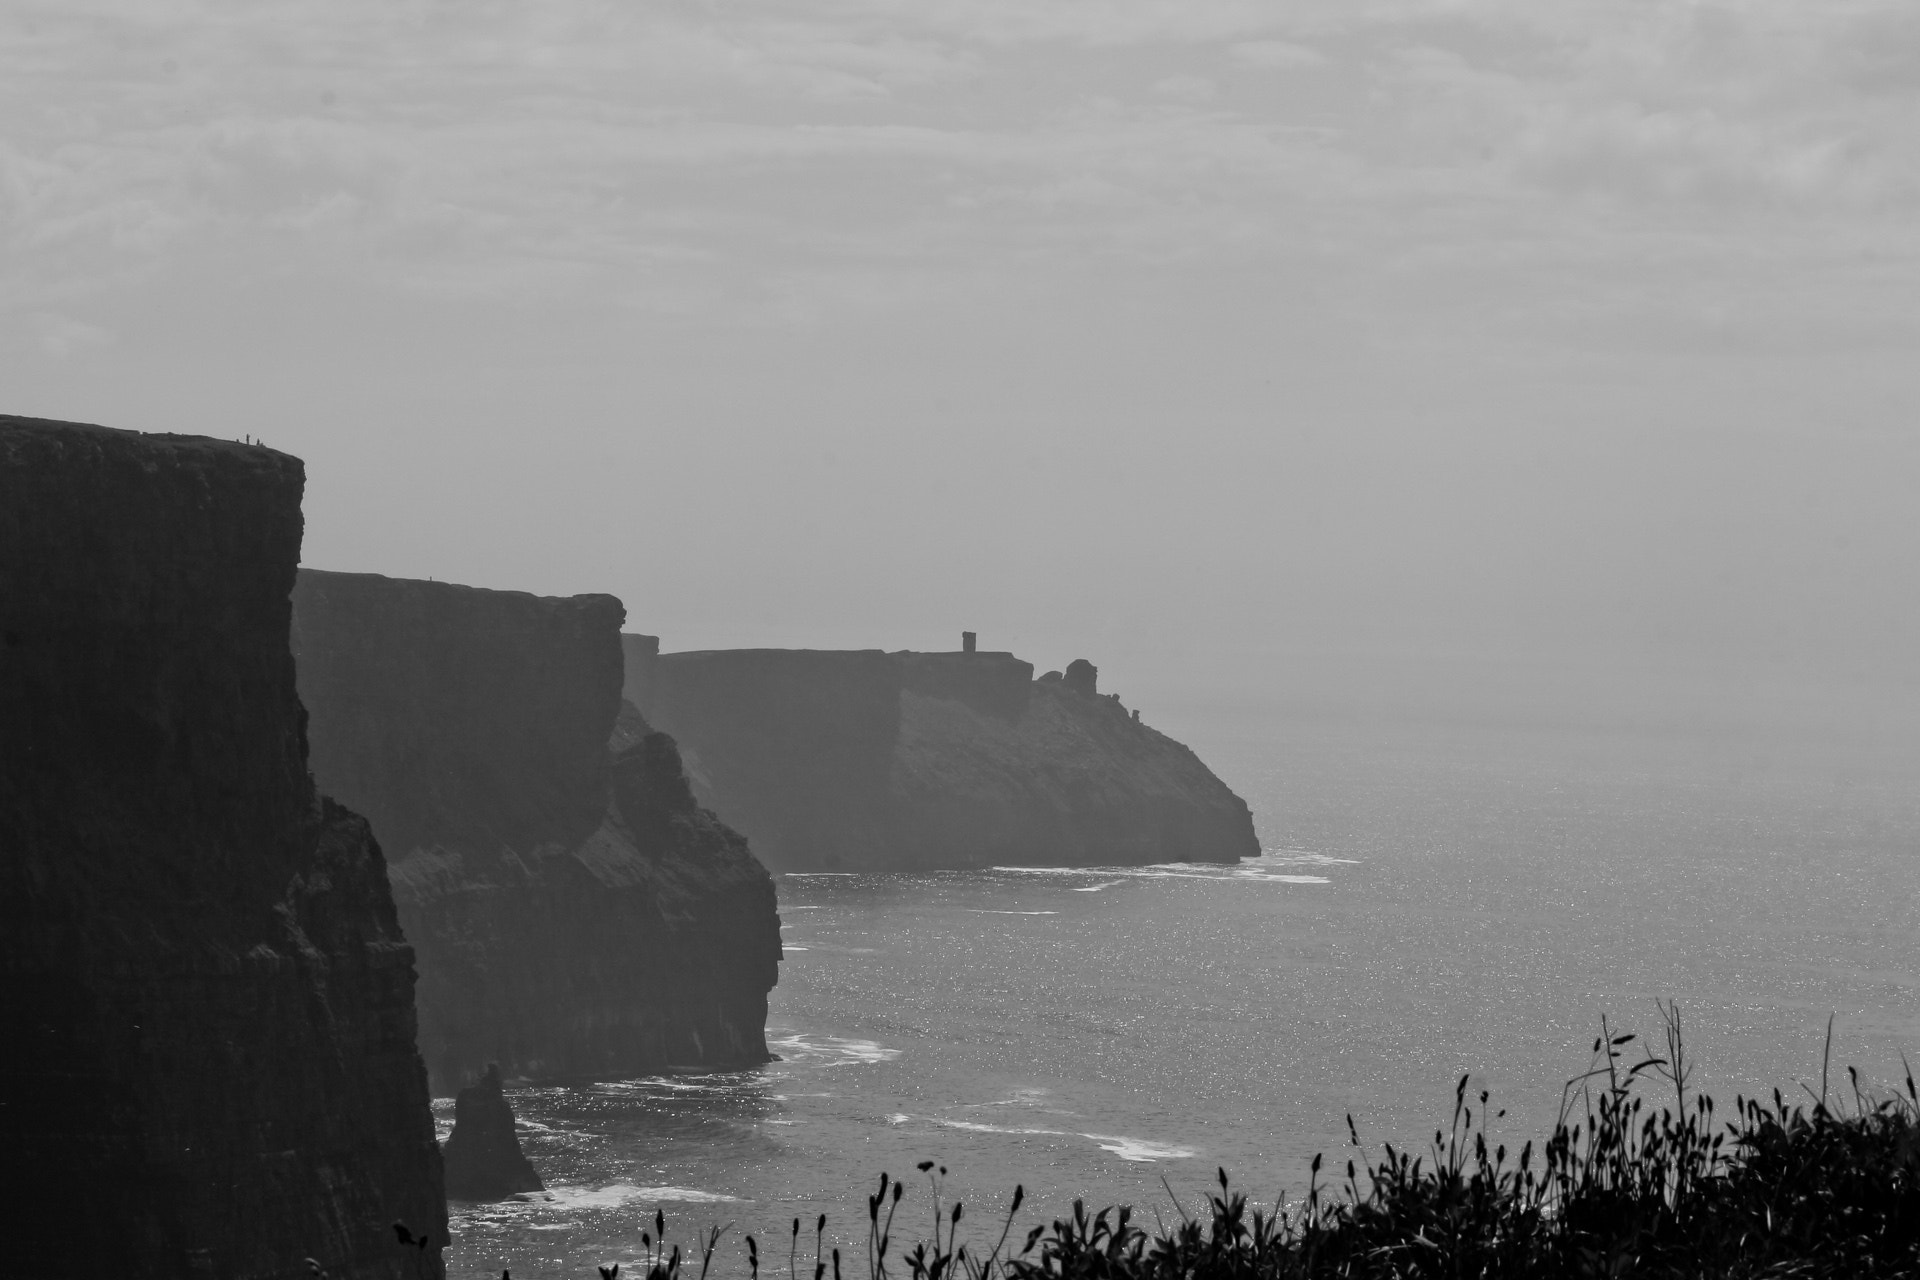 Photograph Cliffs of Moher by Florian Szasz on 500px